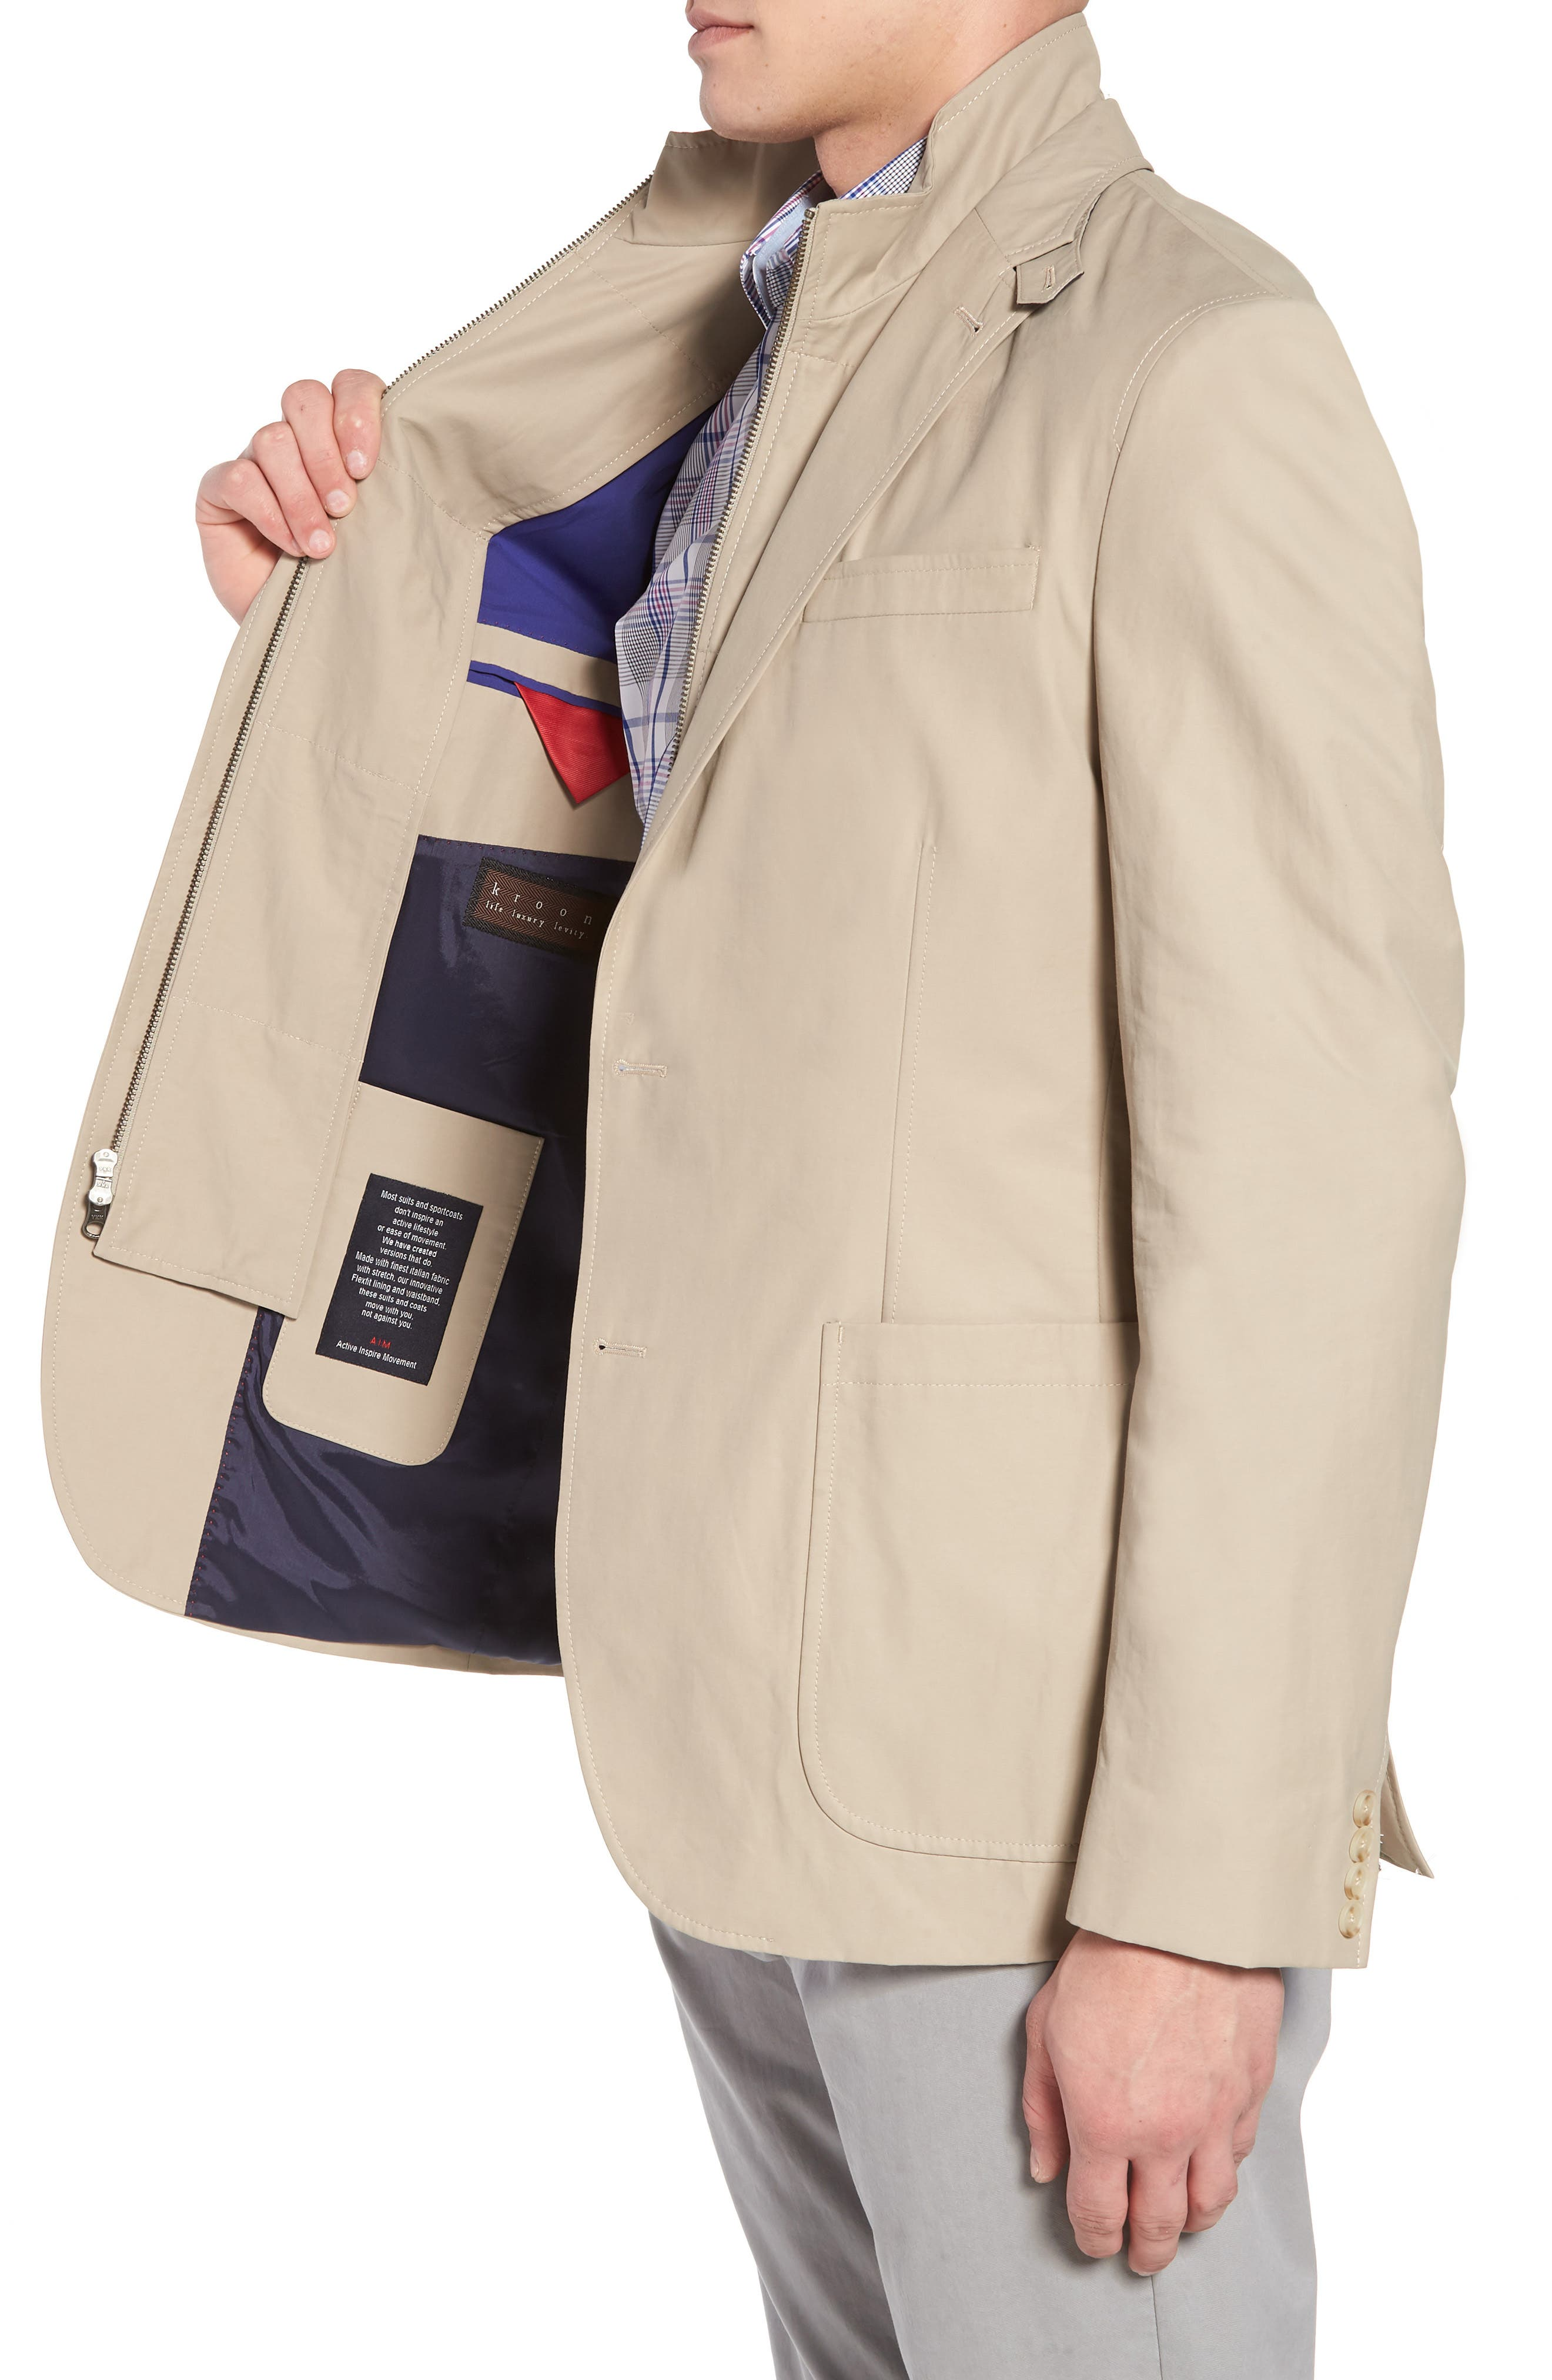 Jones AIM Classic Fit Hybrid Blazer,                             Alternate thumbnail 3, color,                             Tan